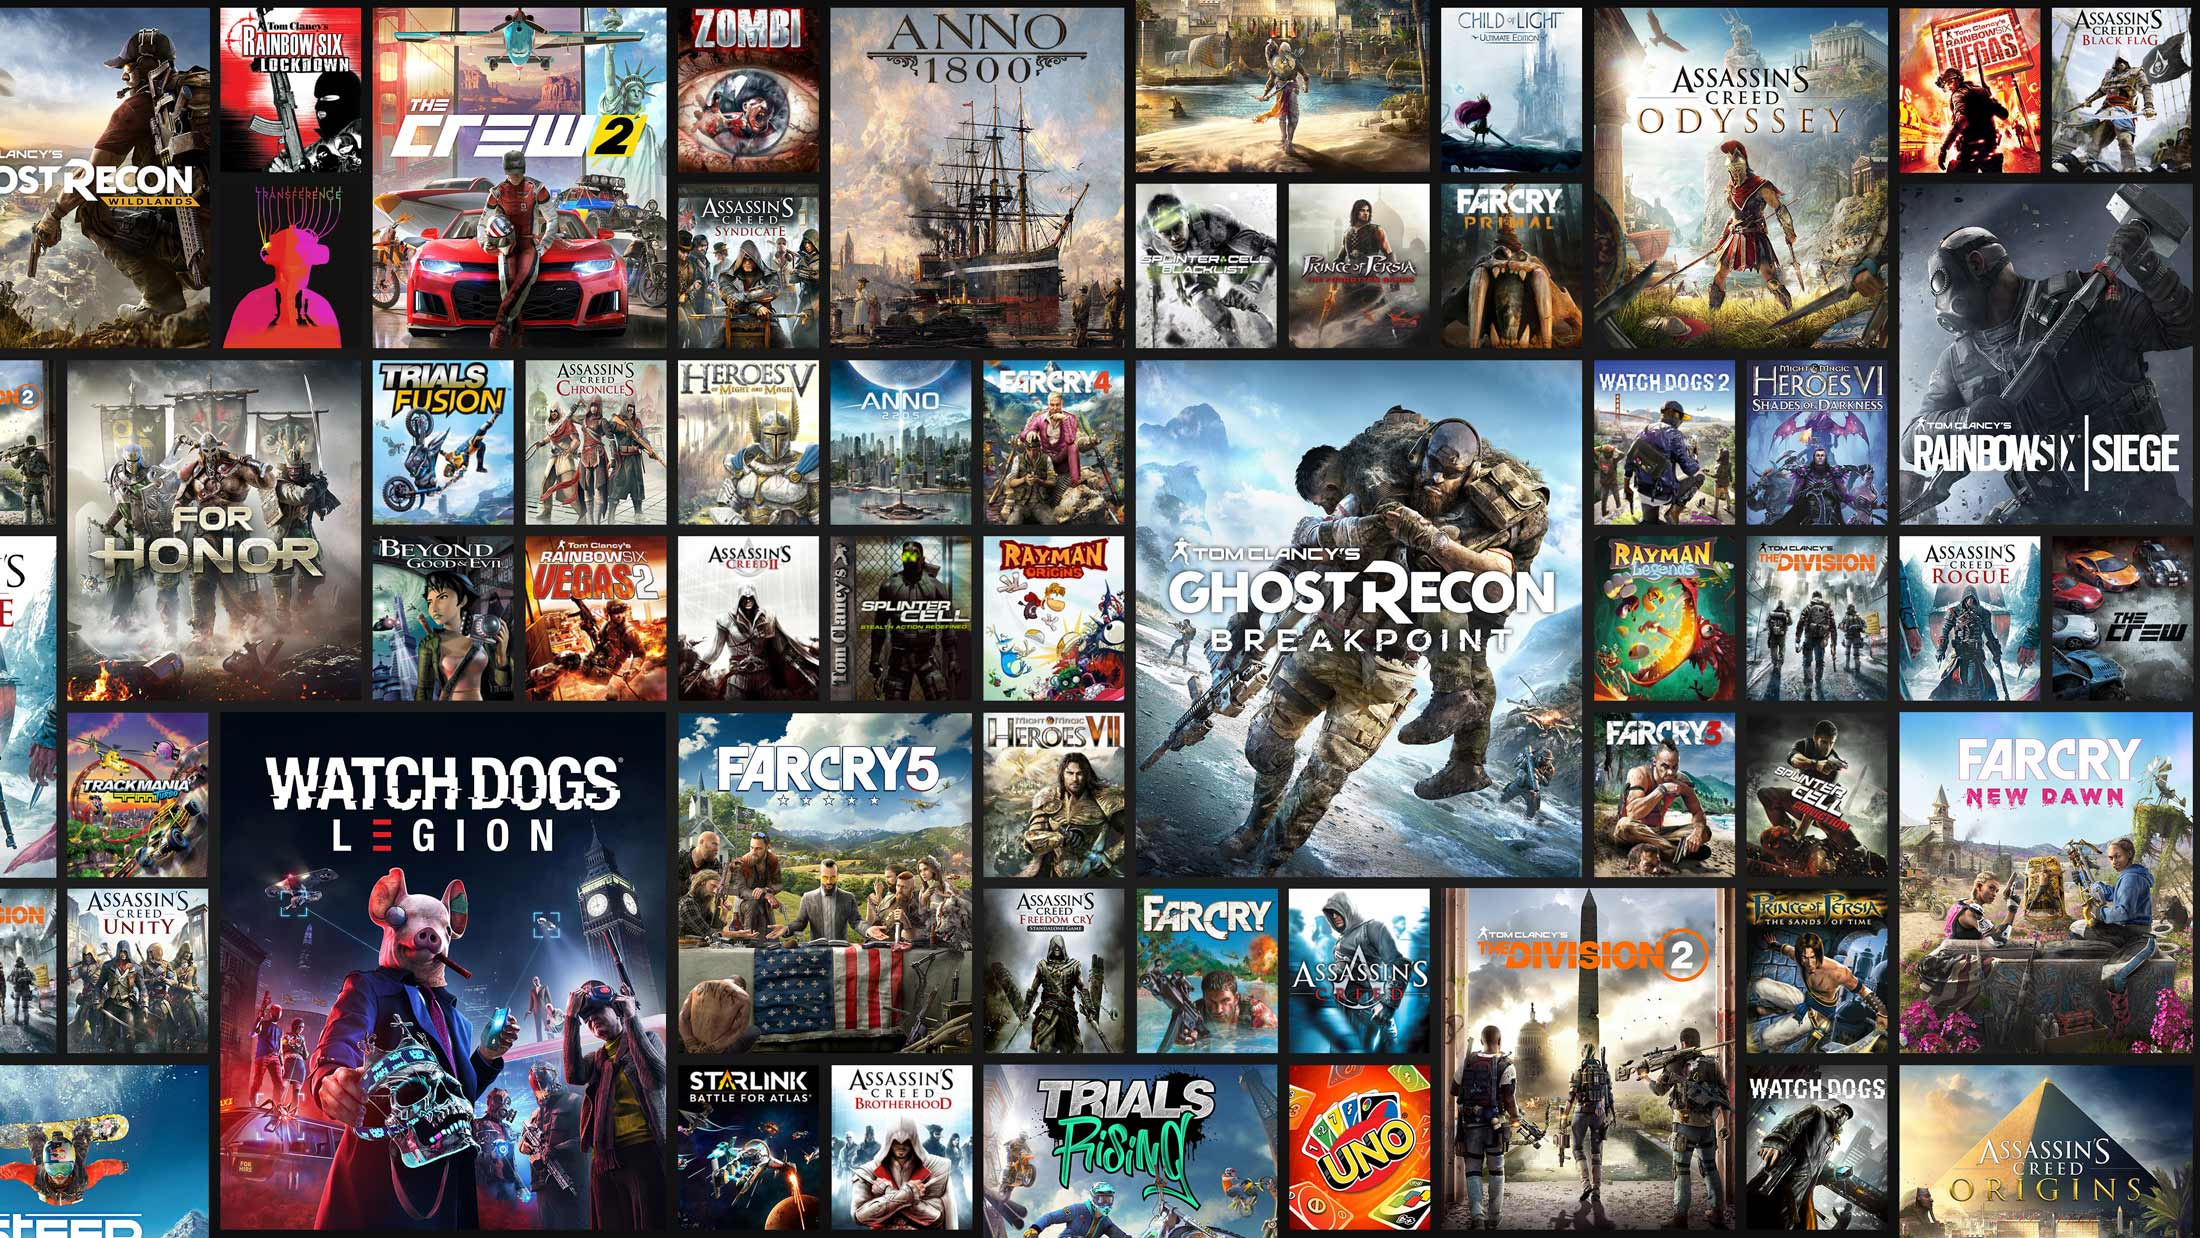 All games available through Uplay+